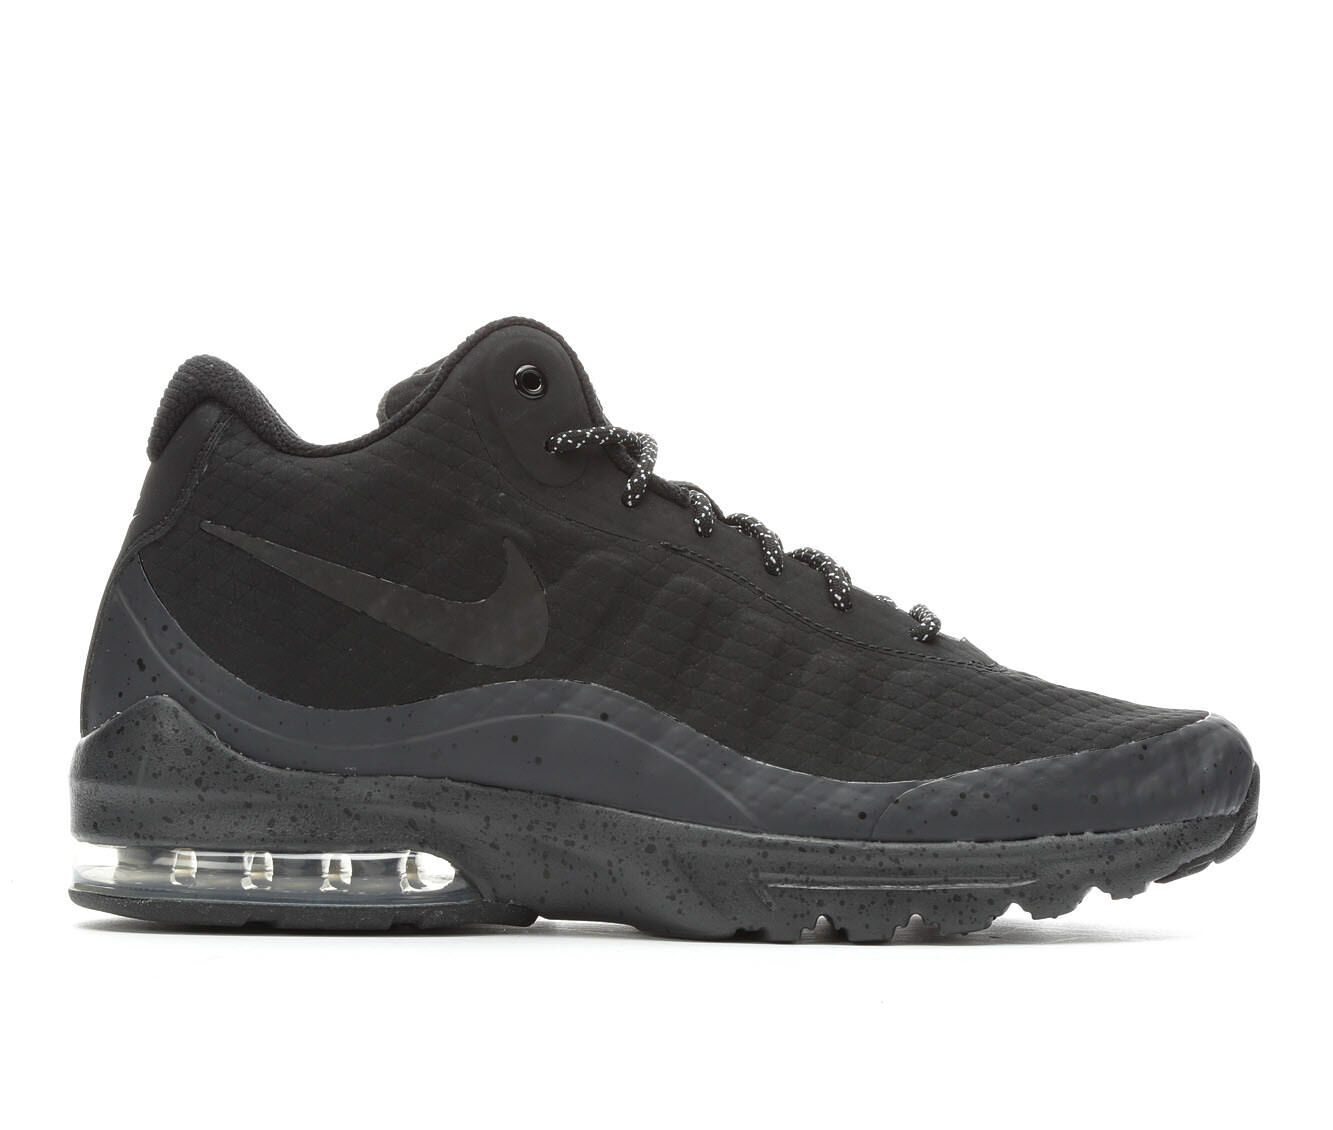 Men's Nike Air Max Invigor Mid High Top Athletic Sneakers